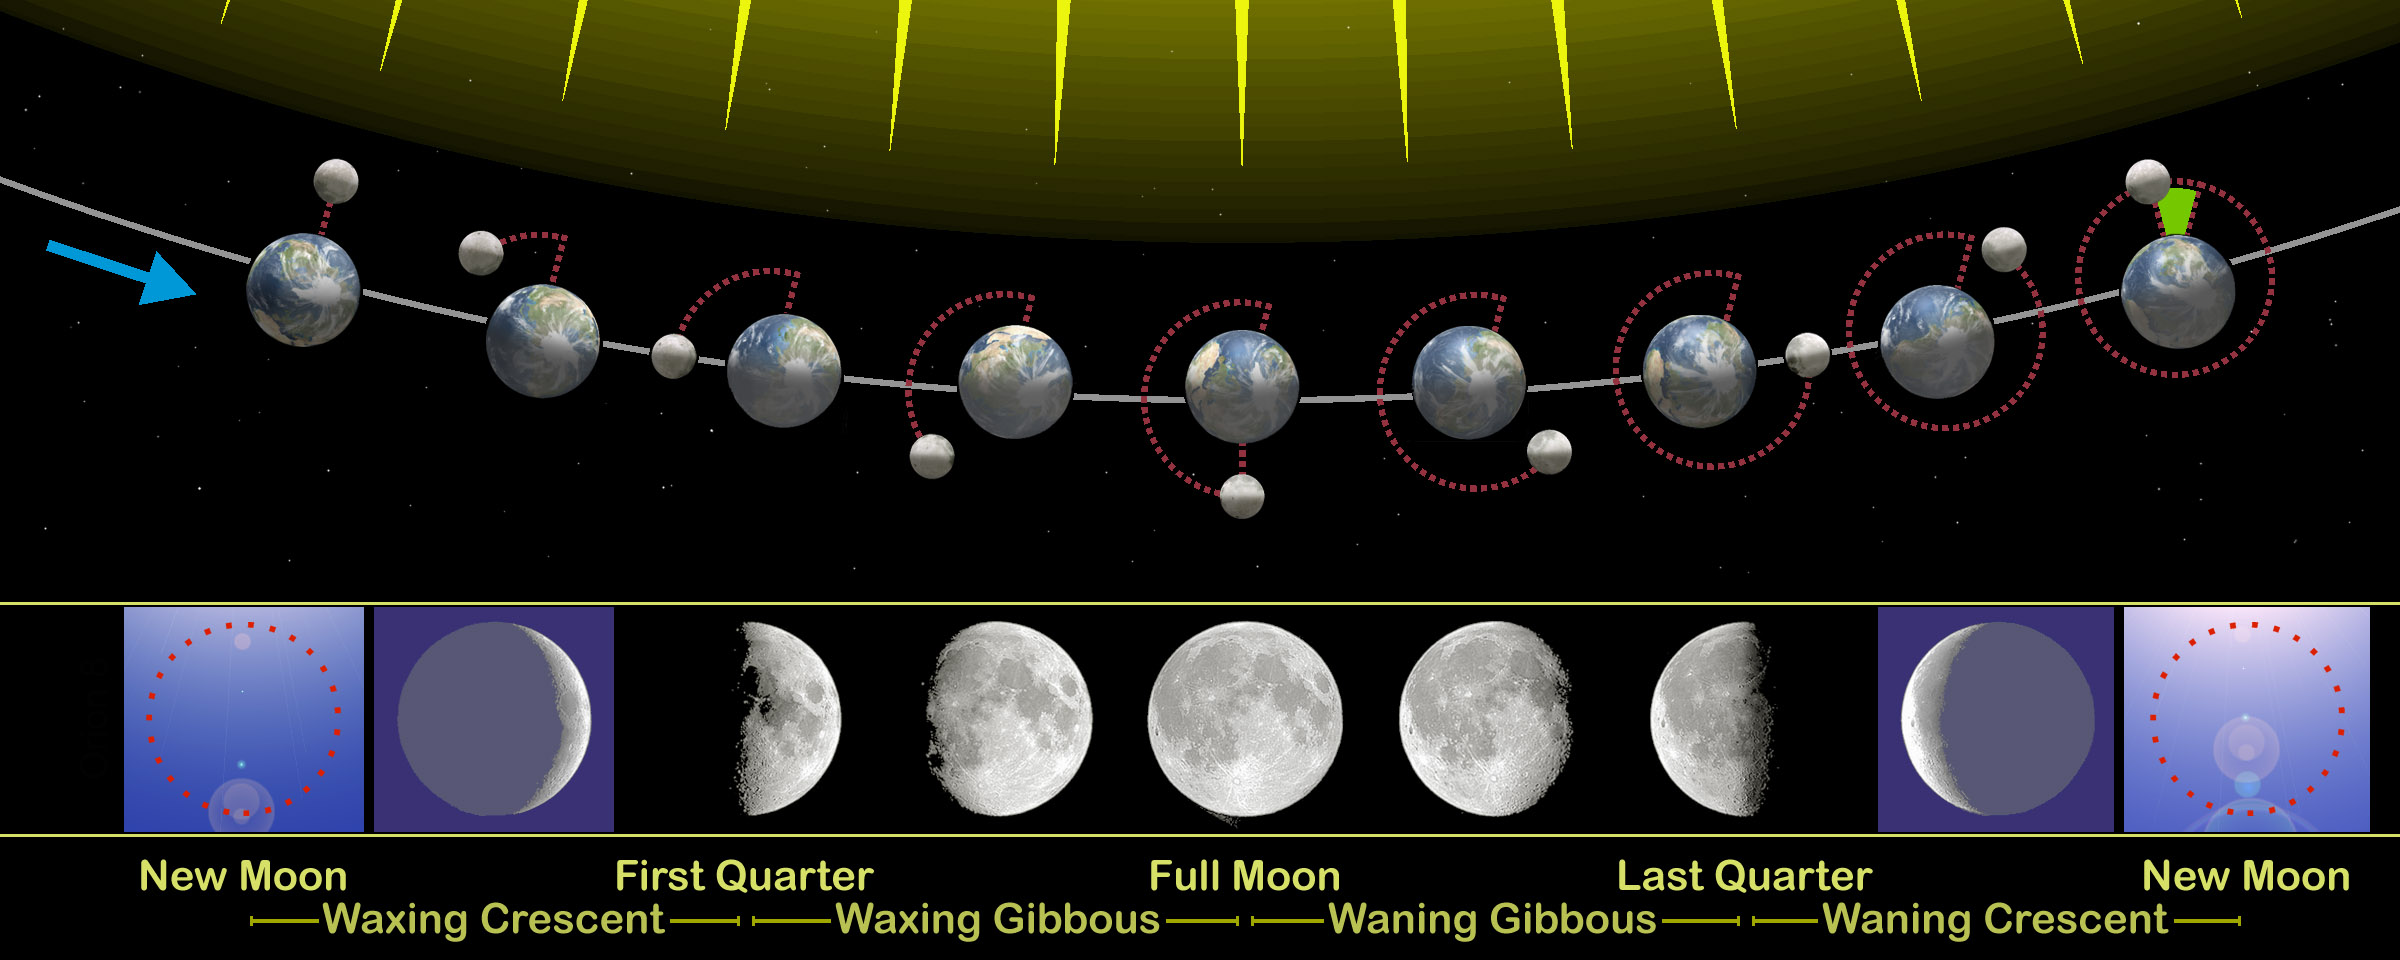 Filemoon phases eng wikimedia commons filemoon phases eng pooptronica Choice Image